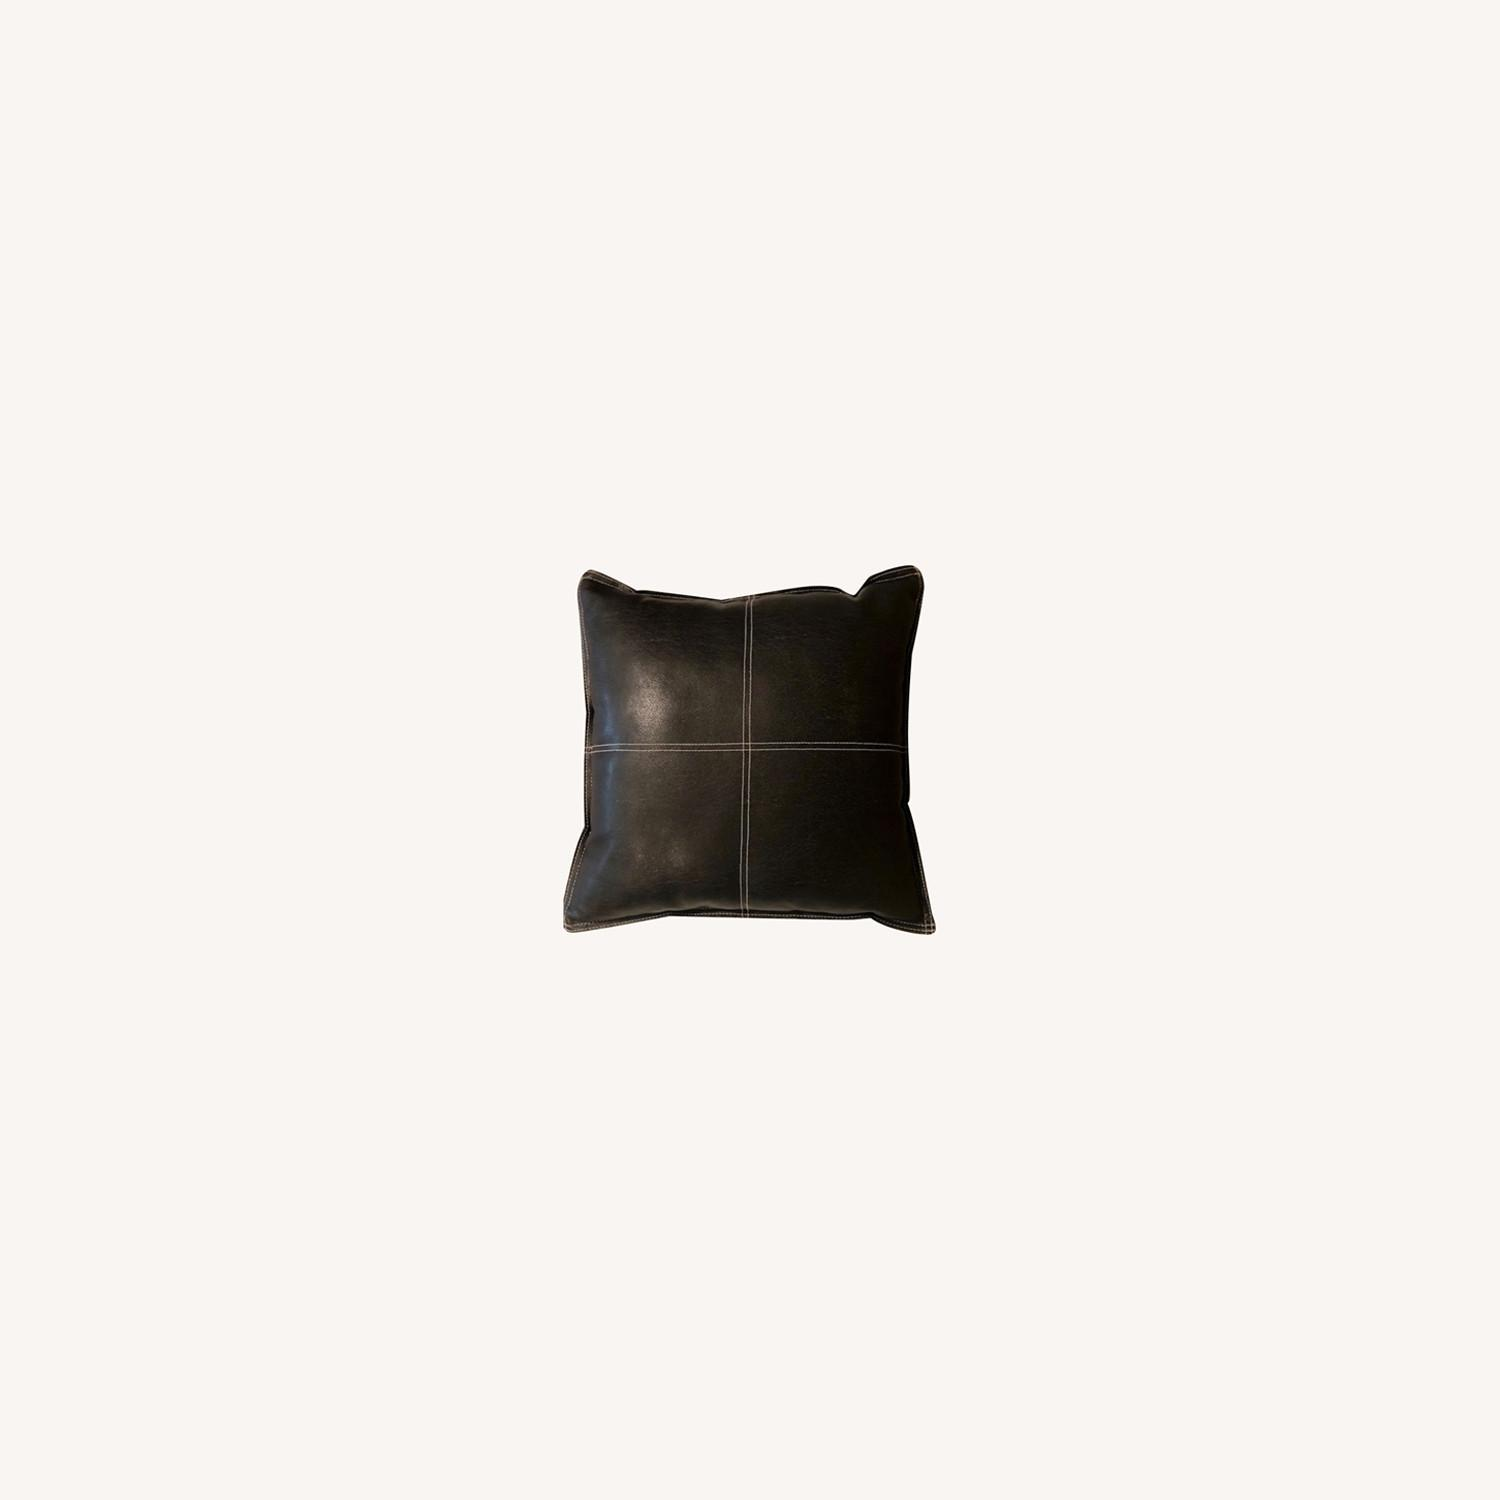 Black Leather Square Throw Pillow - image-0